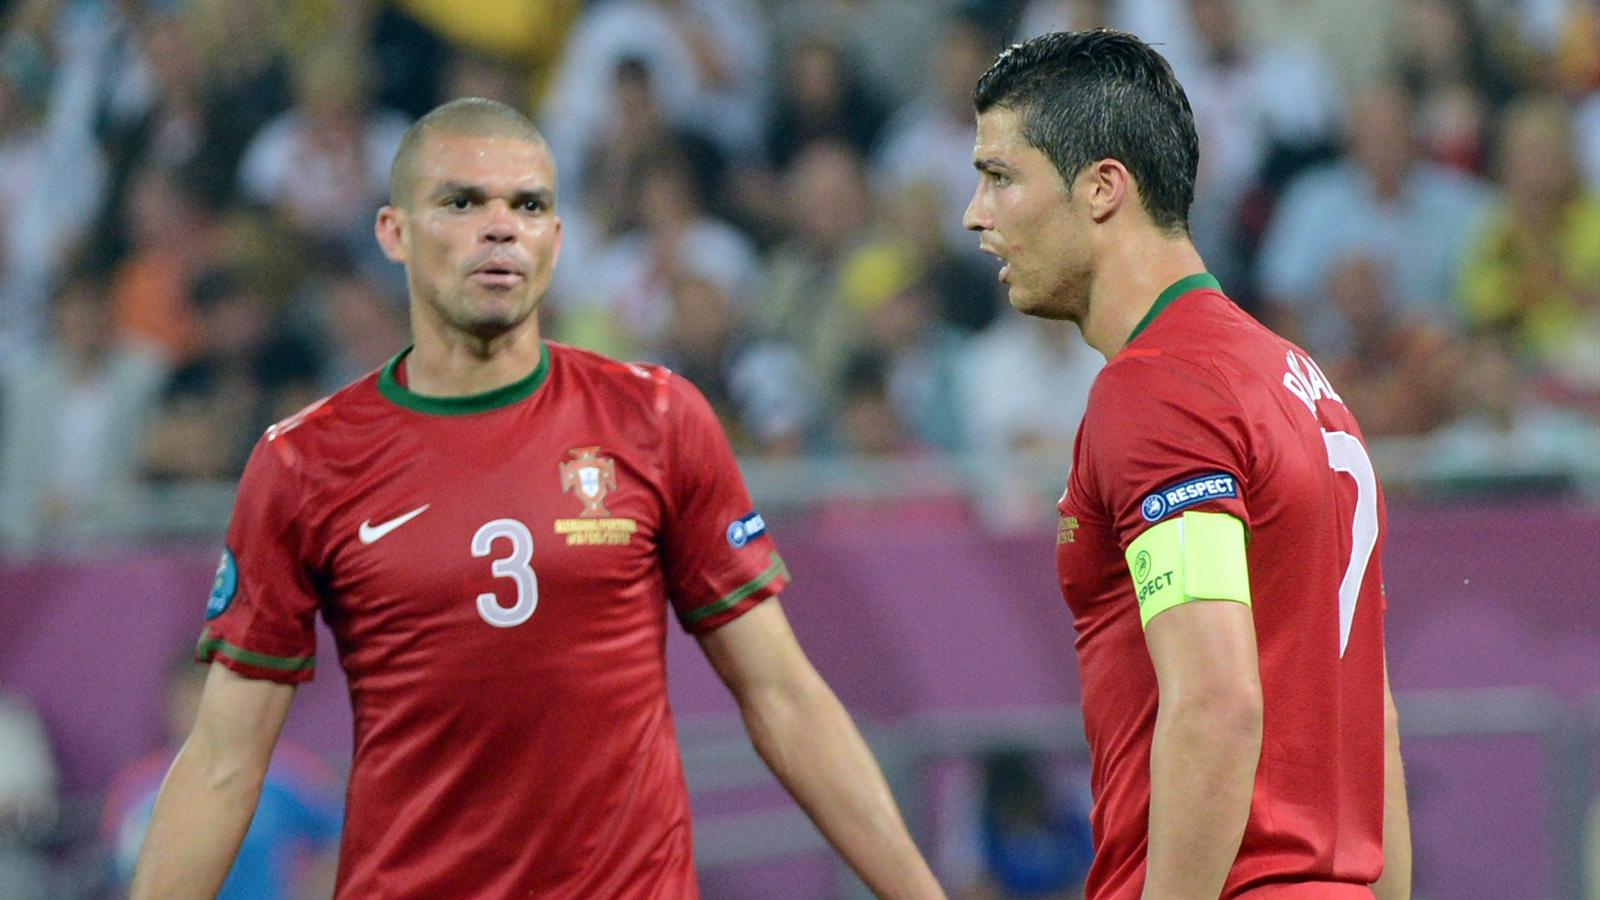 Barrages mondial 2014 ce portugal n a rien de galactique - Portugal qualification coupe du monde ...